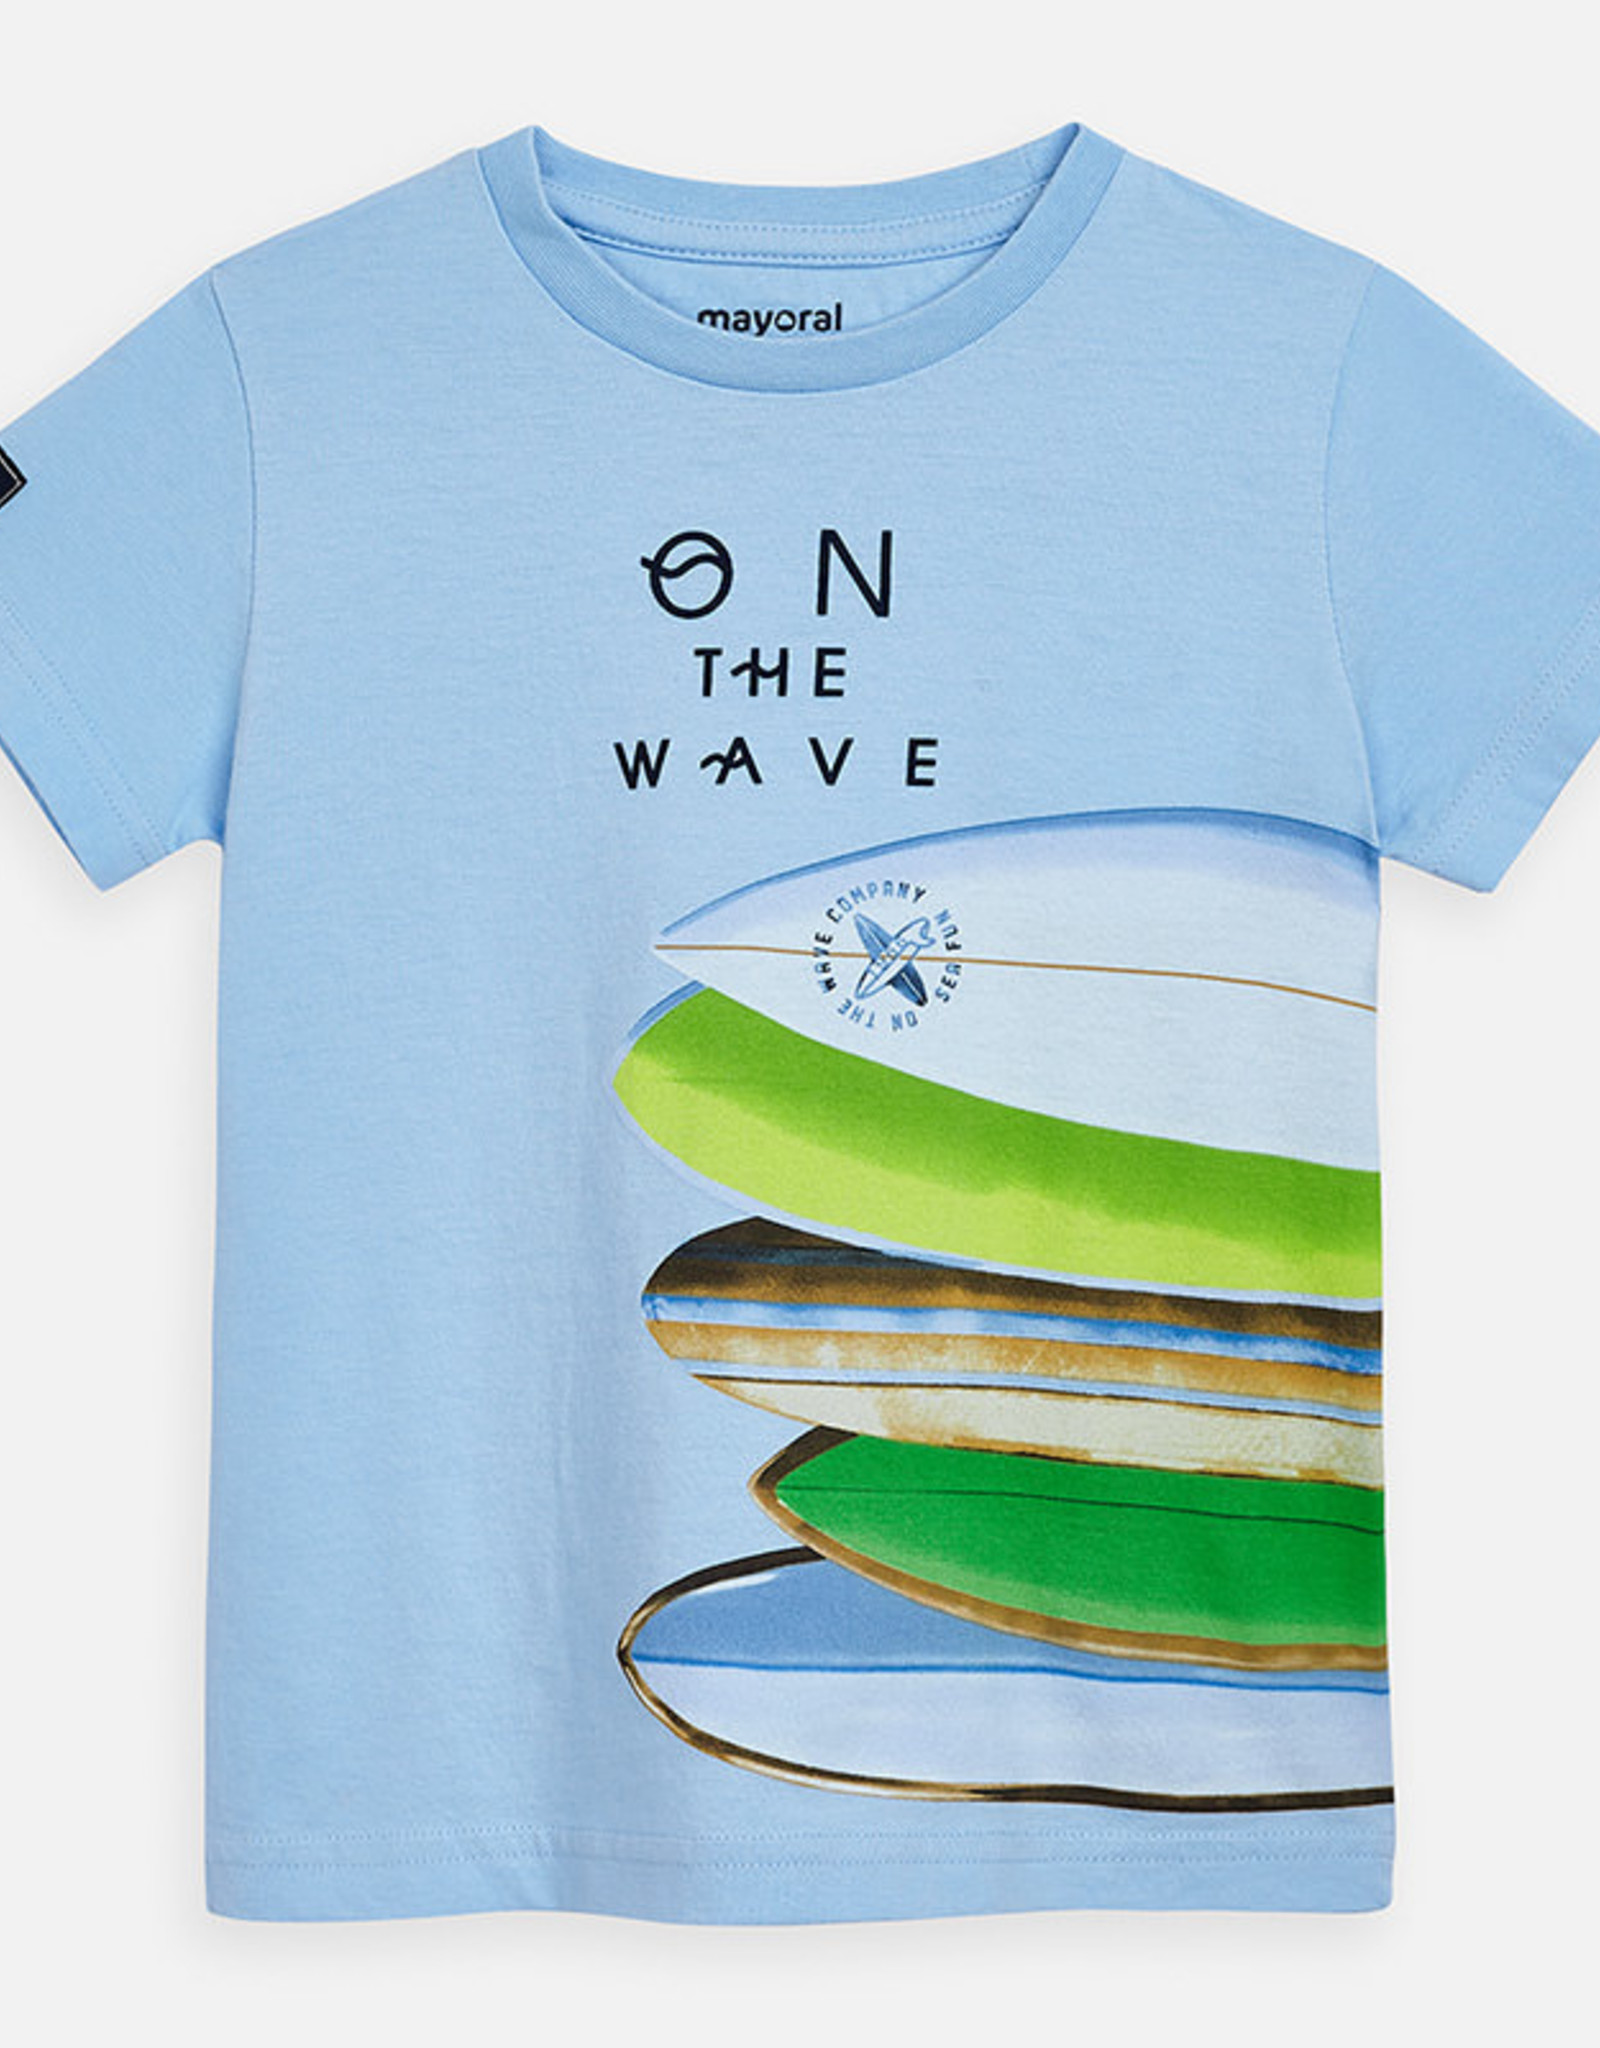 Mayoral On the Wave T Shirt